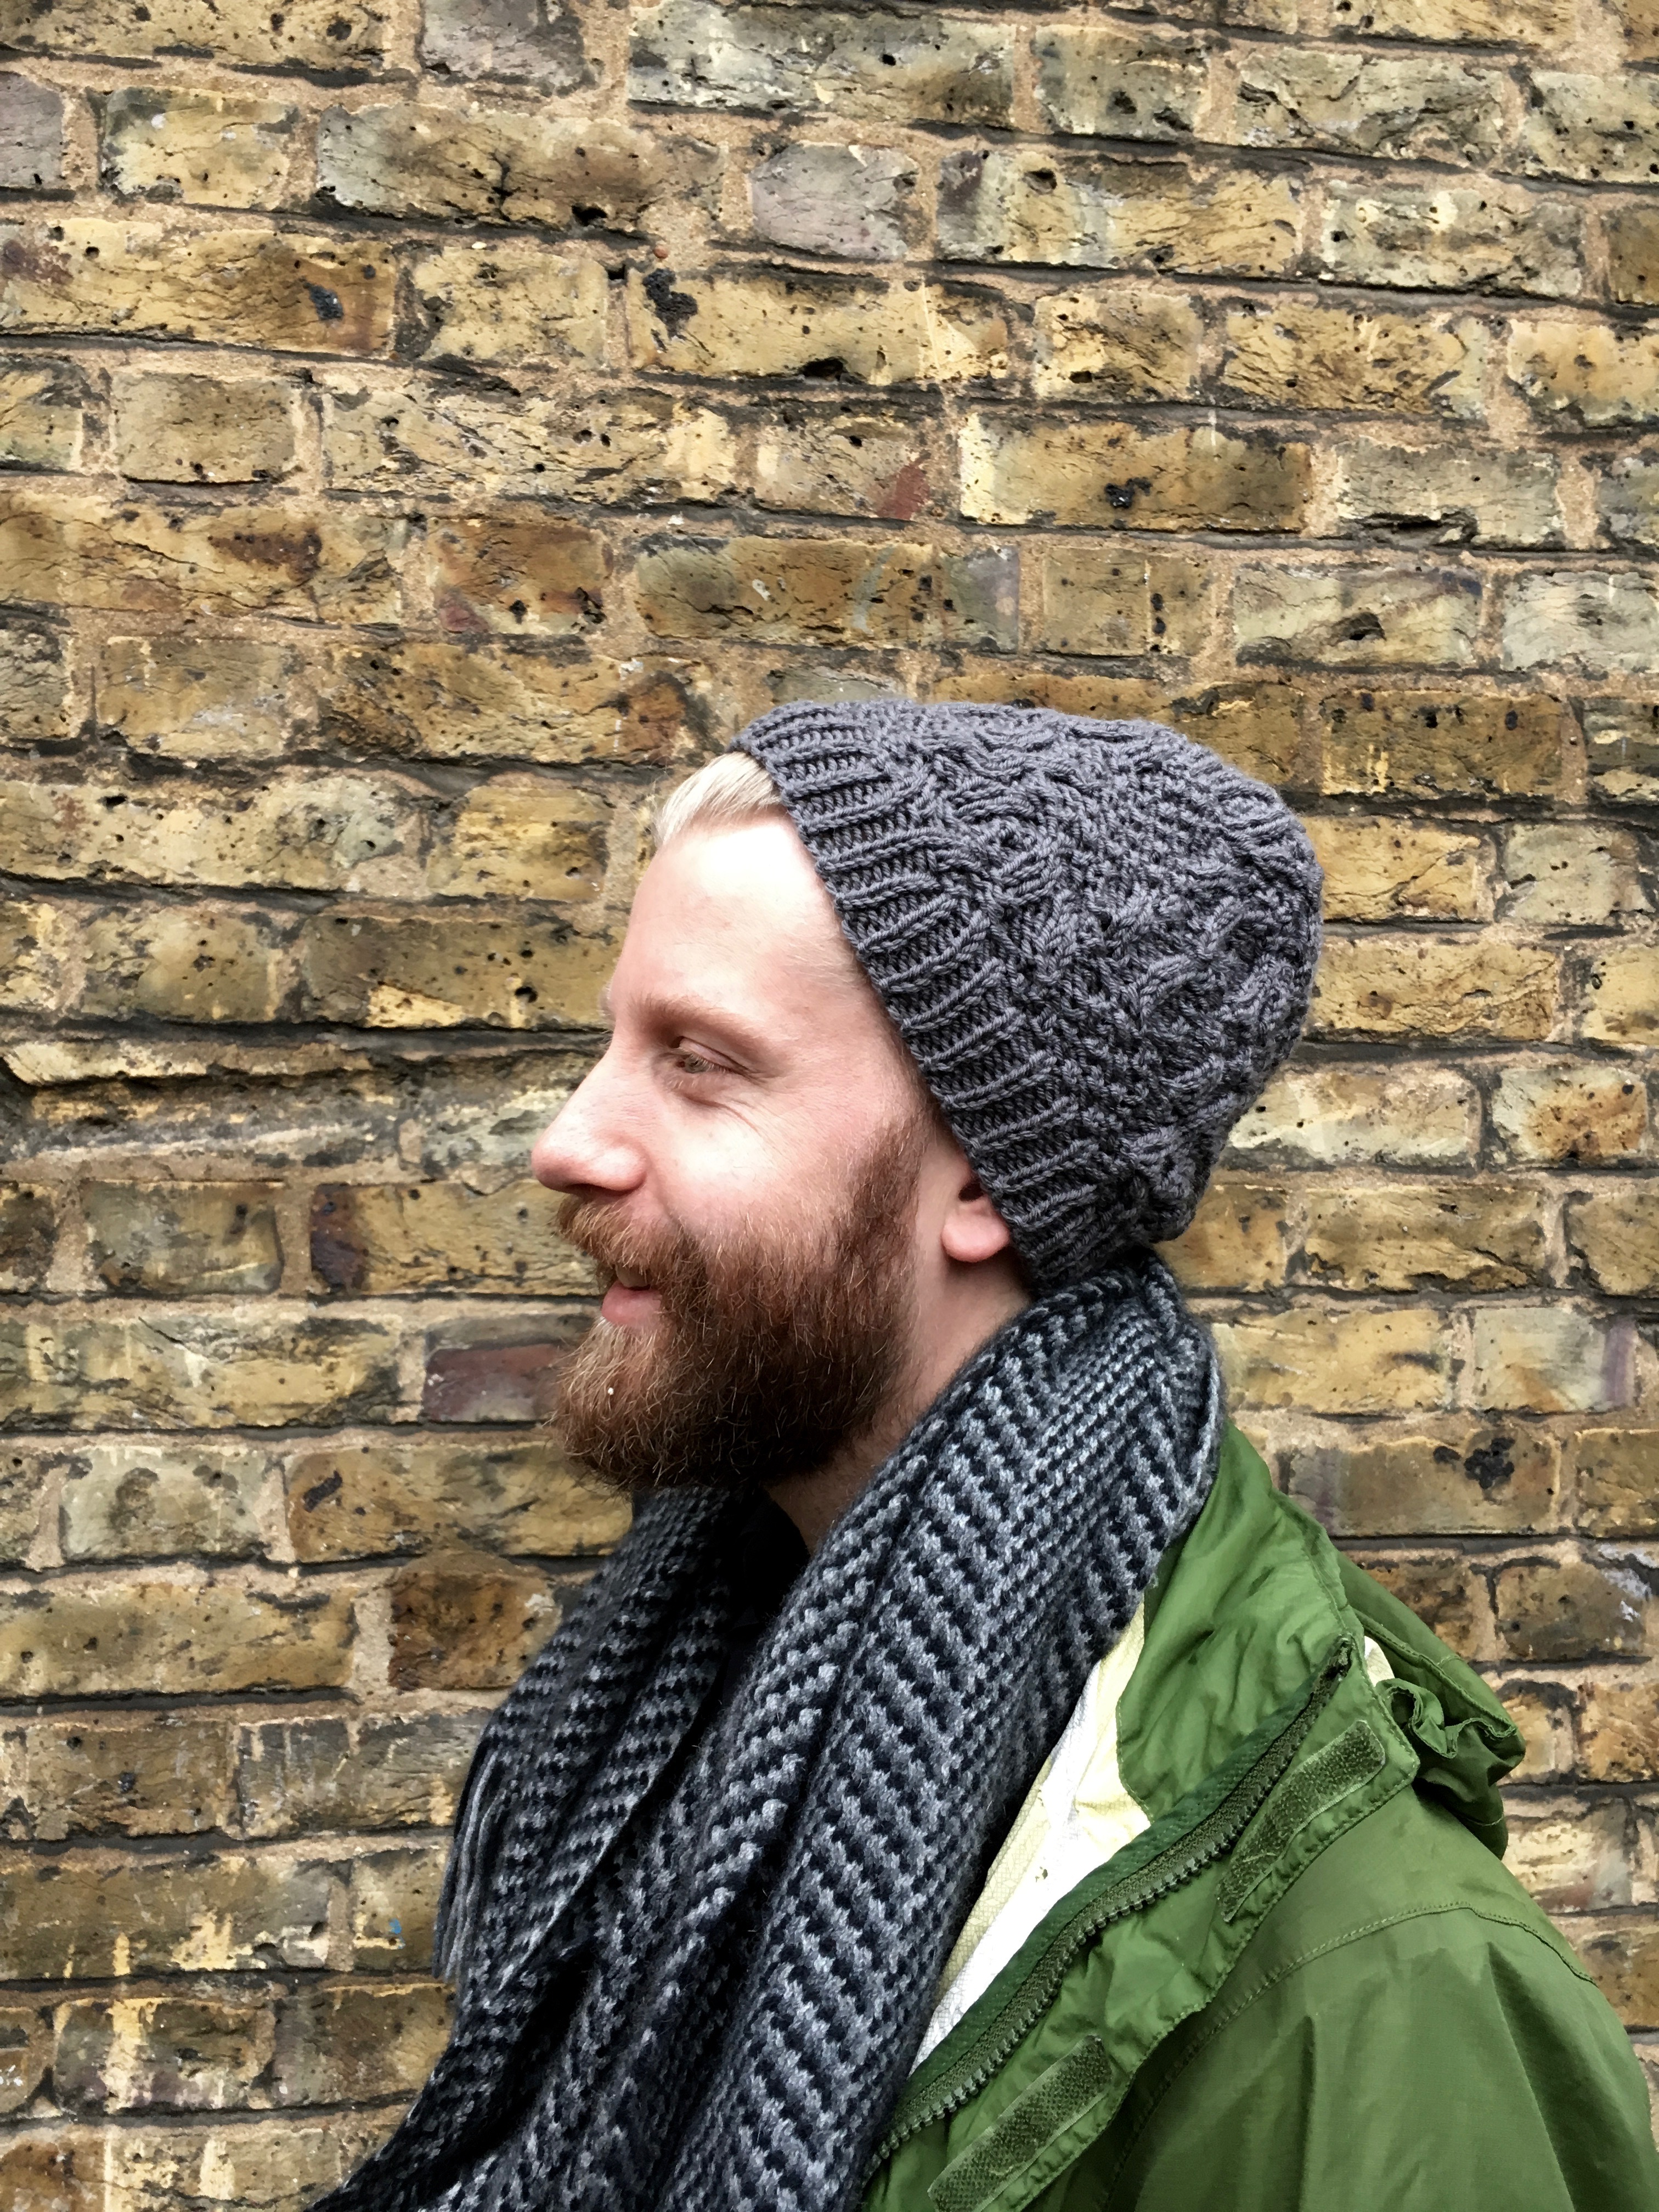 Grant wearing the hat I knit